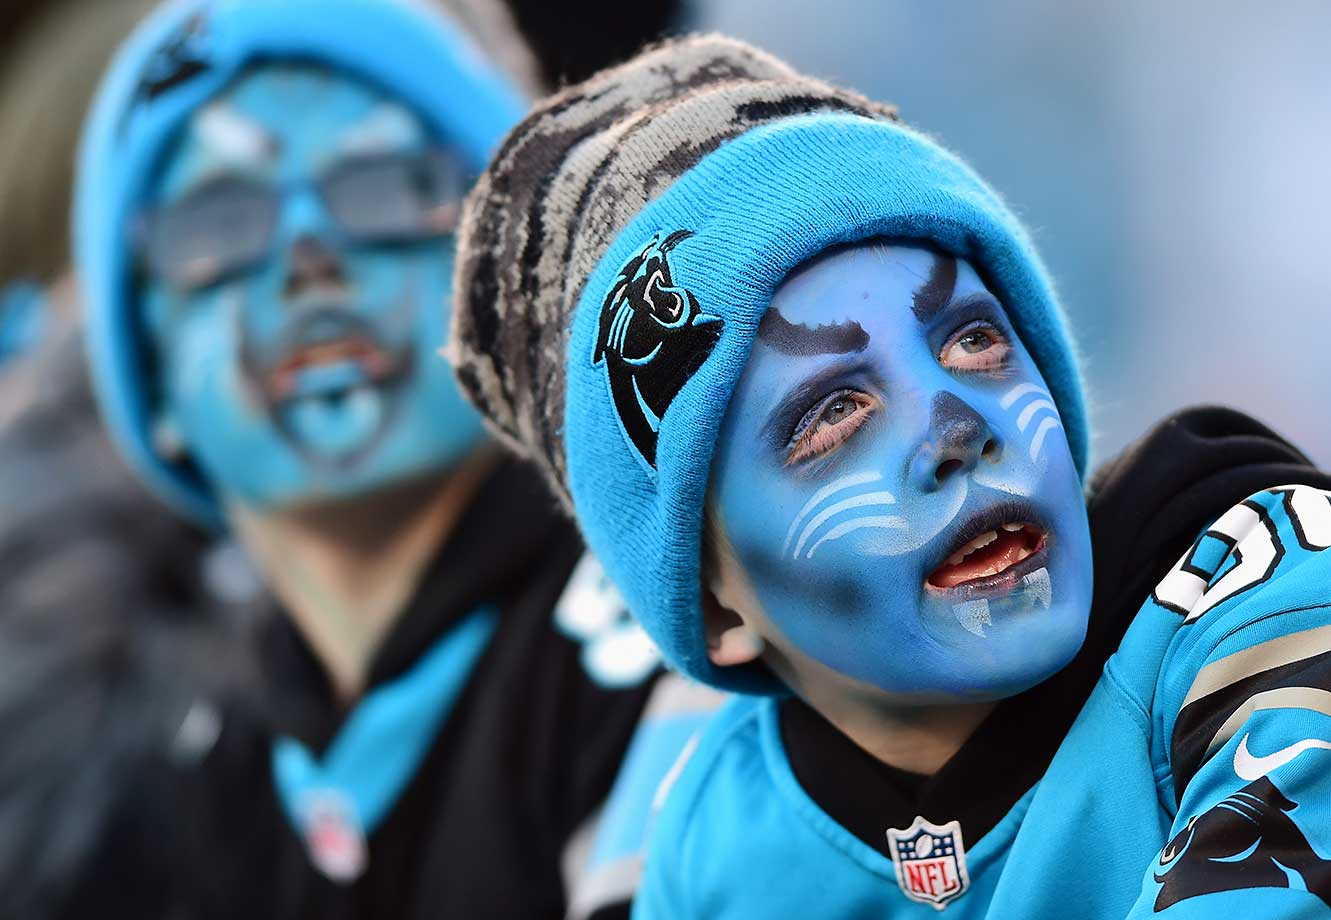 Carolina Panthers fans look on prior to the NFC Championship Game.